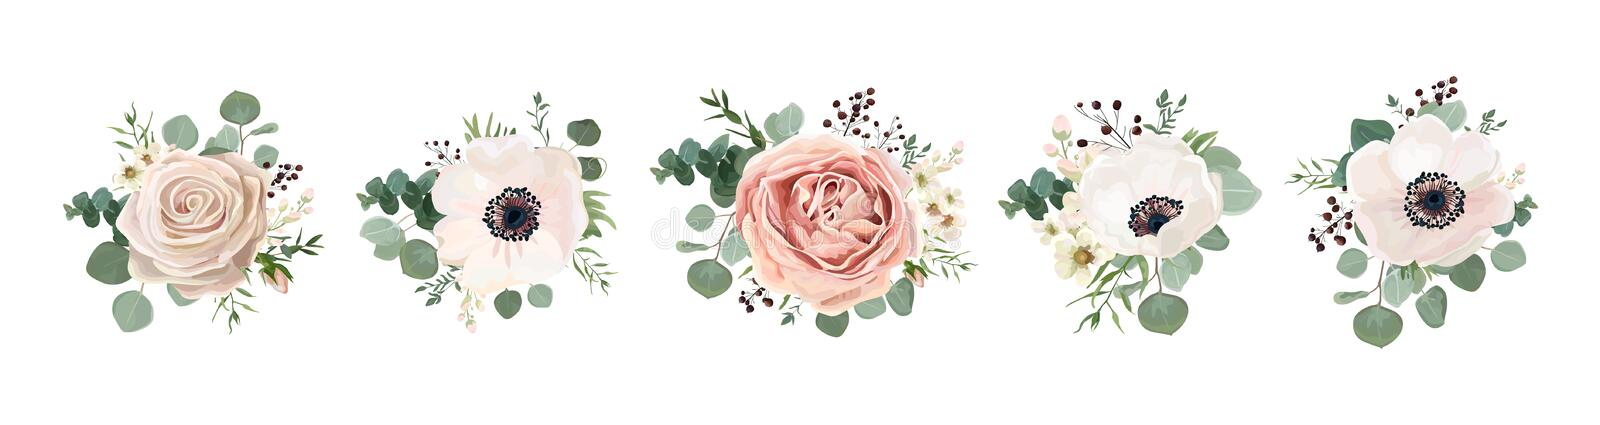 Vector floral bouquet design: garden pink peach lavender creamy royalty free illustration